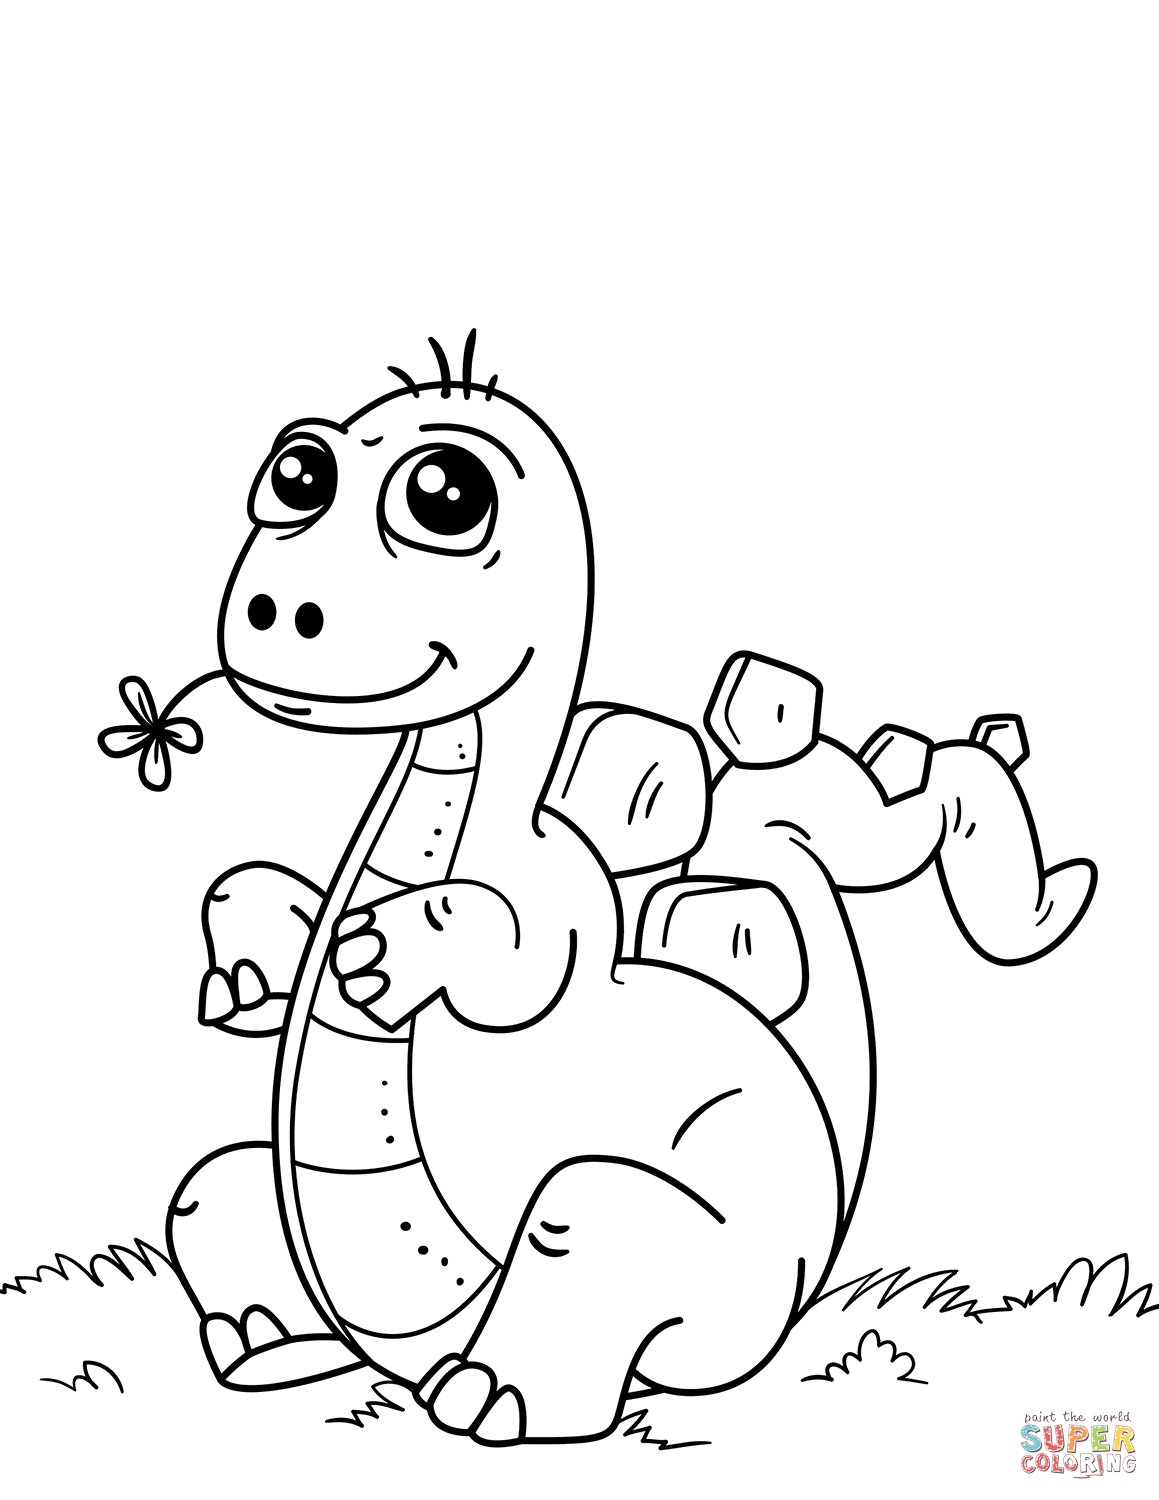 dinosaur outlines baby dinosaur coloring pages for preschoolers activity dinosaur outlines